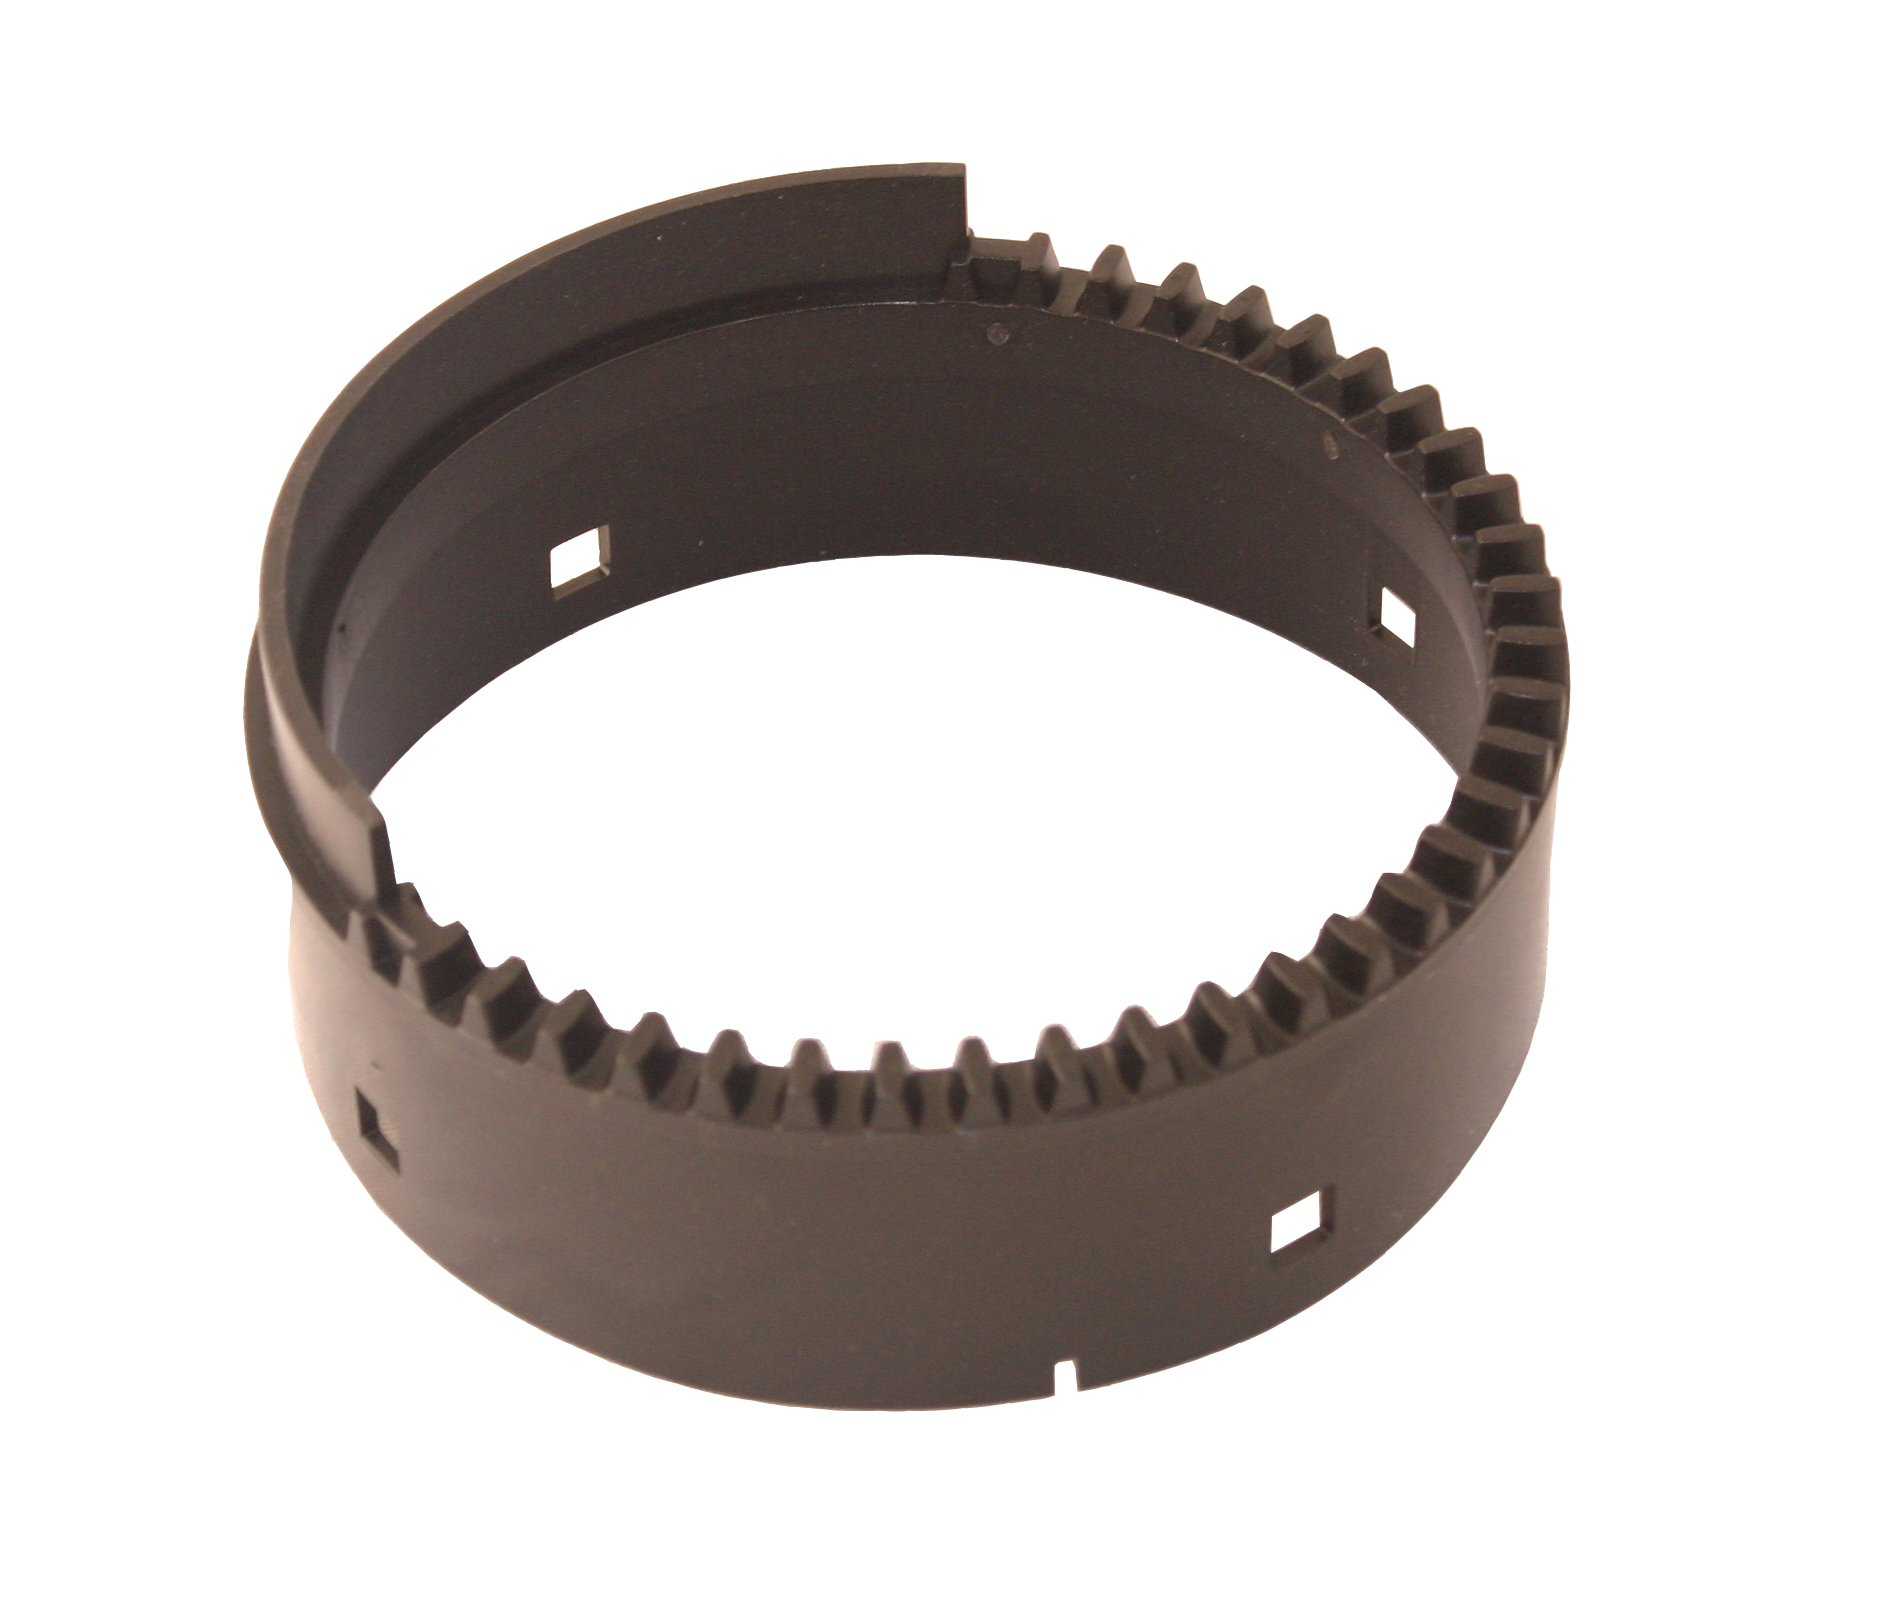 Murray 1501282MA Outer Chute Ring for Snow Throwers by Murray (Image #1)